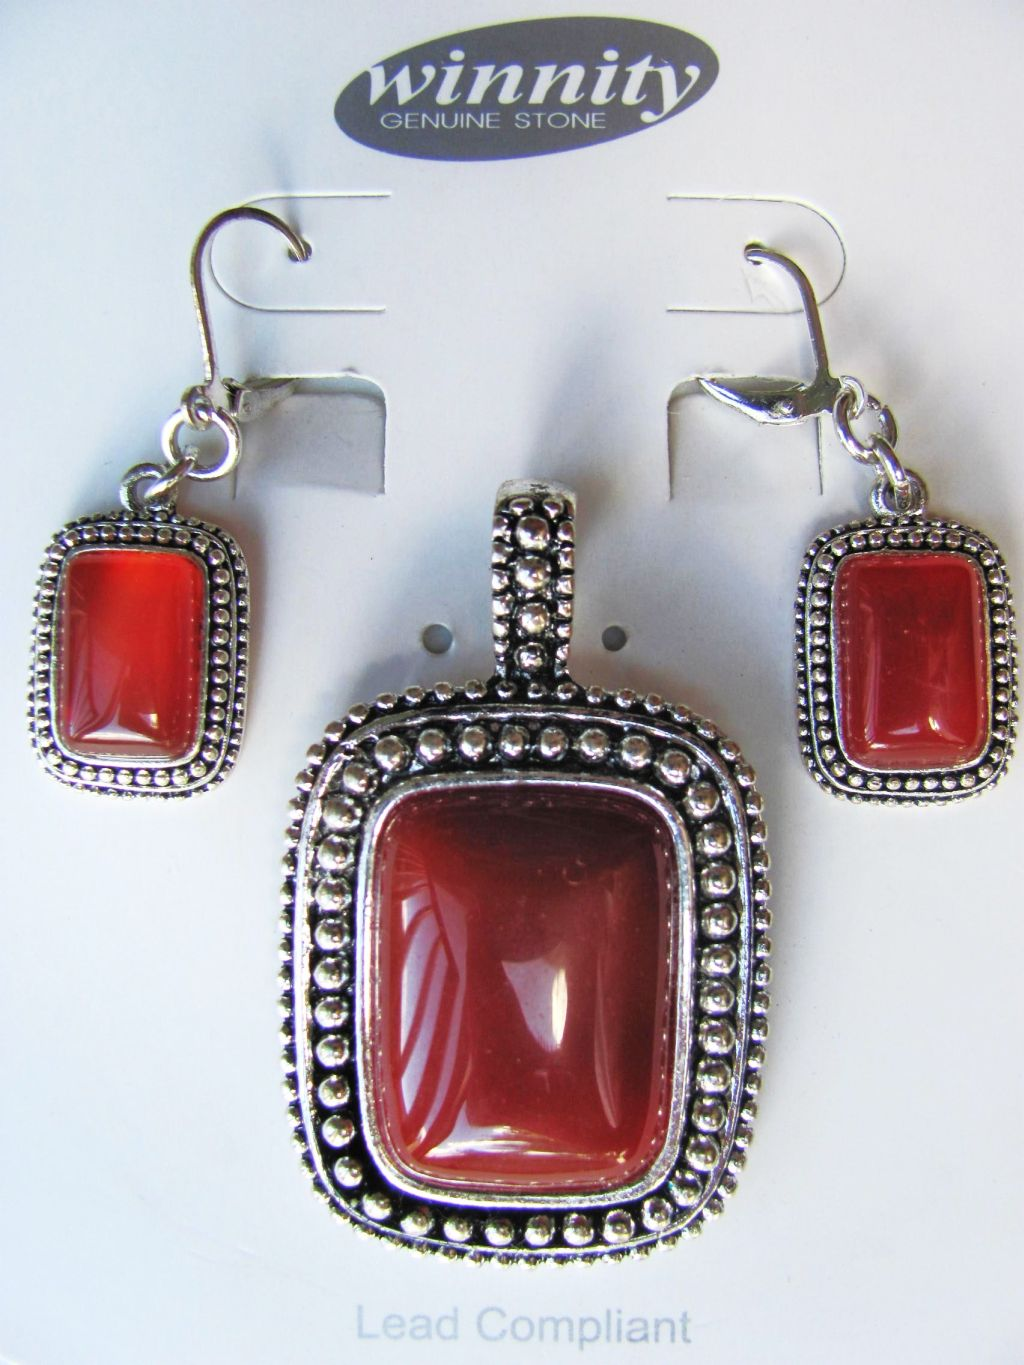 Cornelian Vintage Rectangle Pendant Earrings Set, Genuine Stone